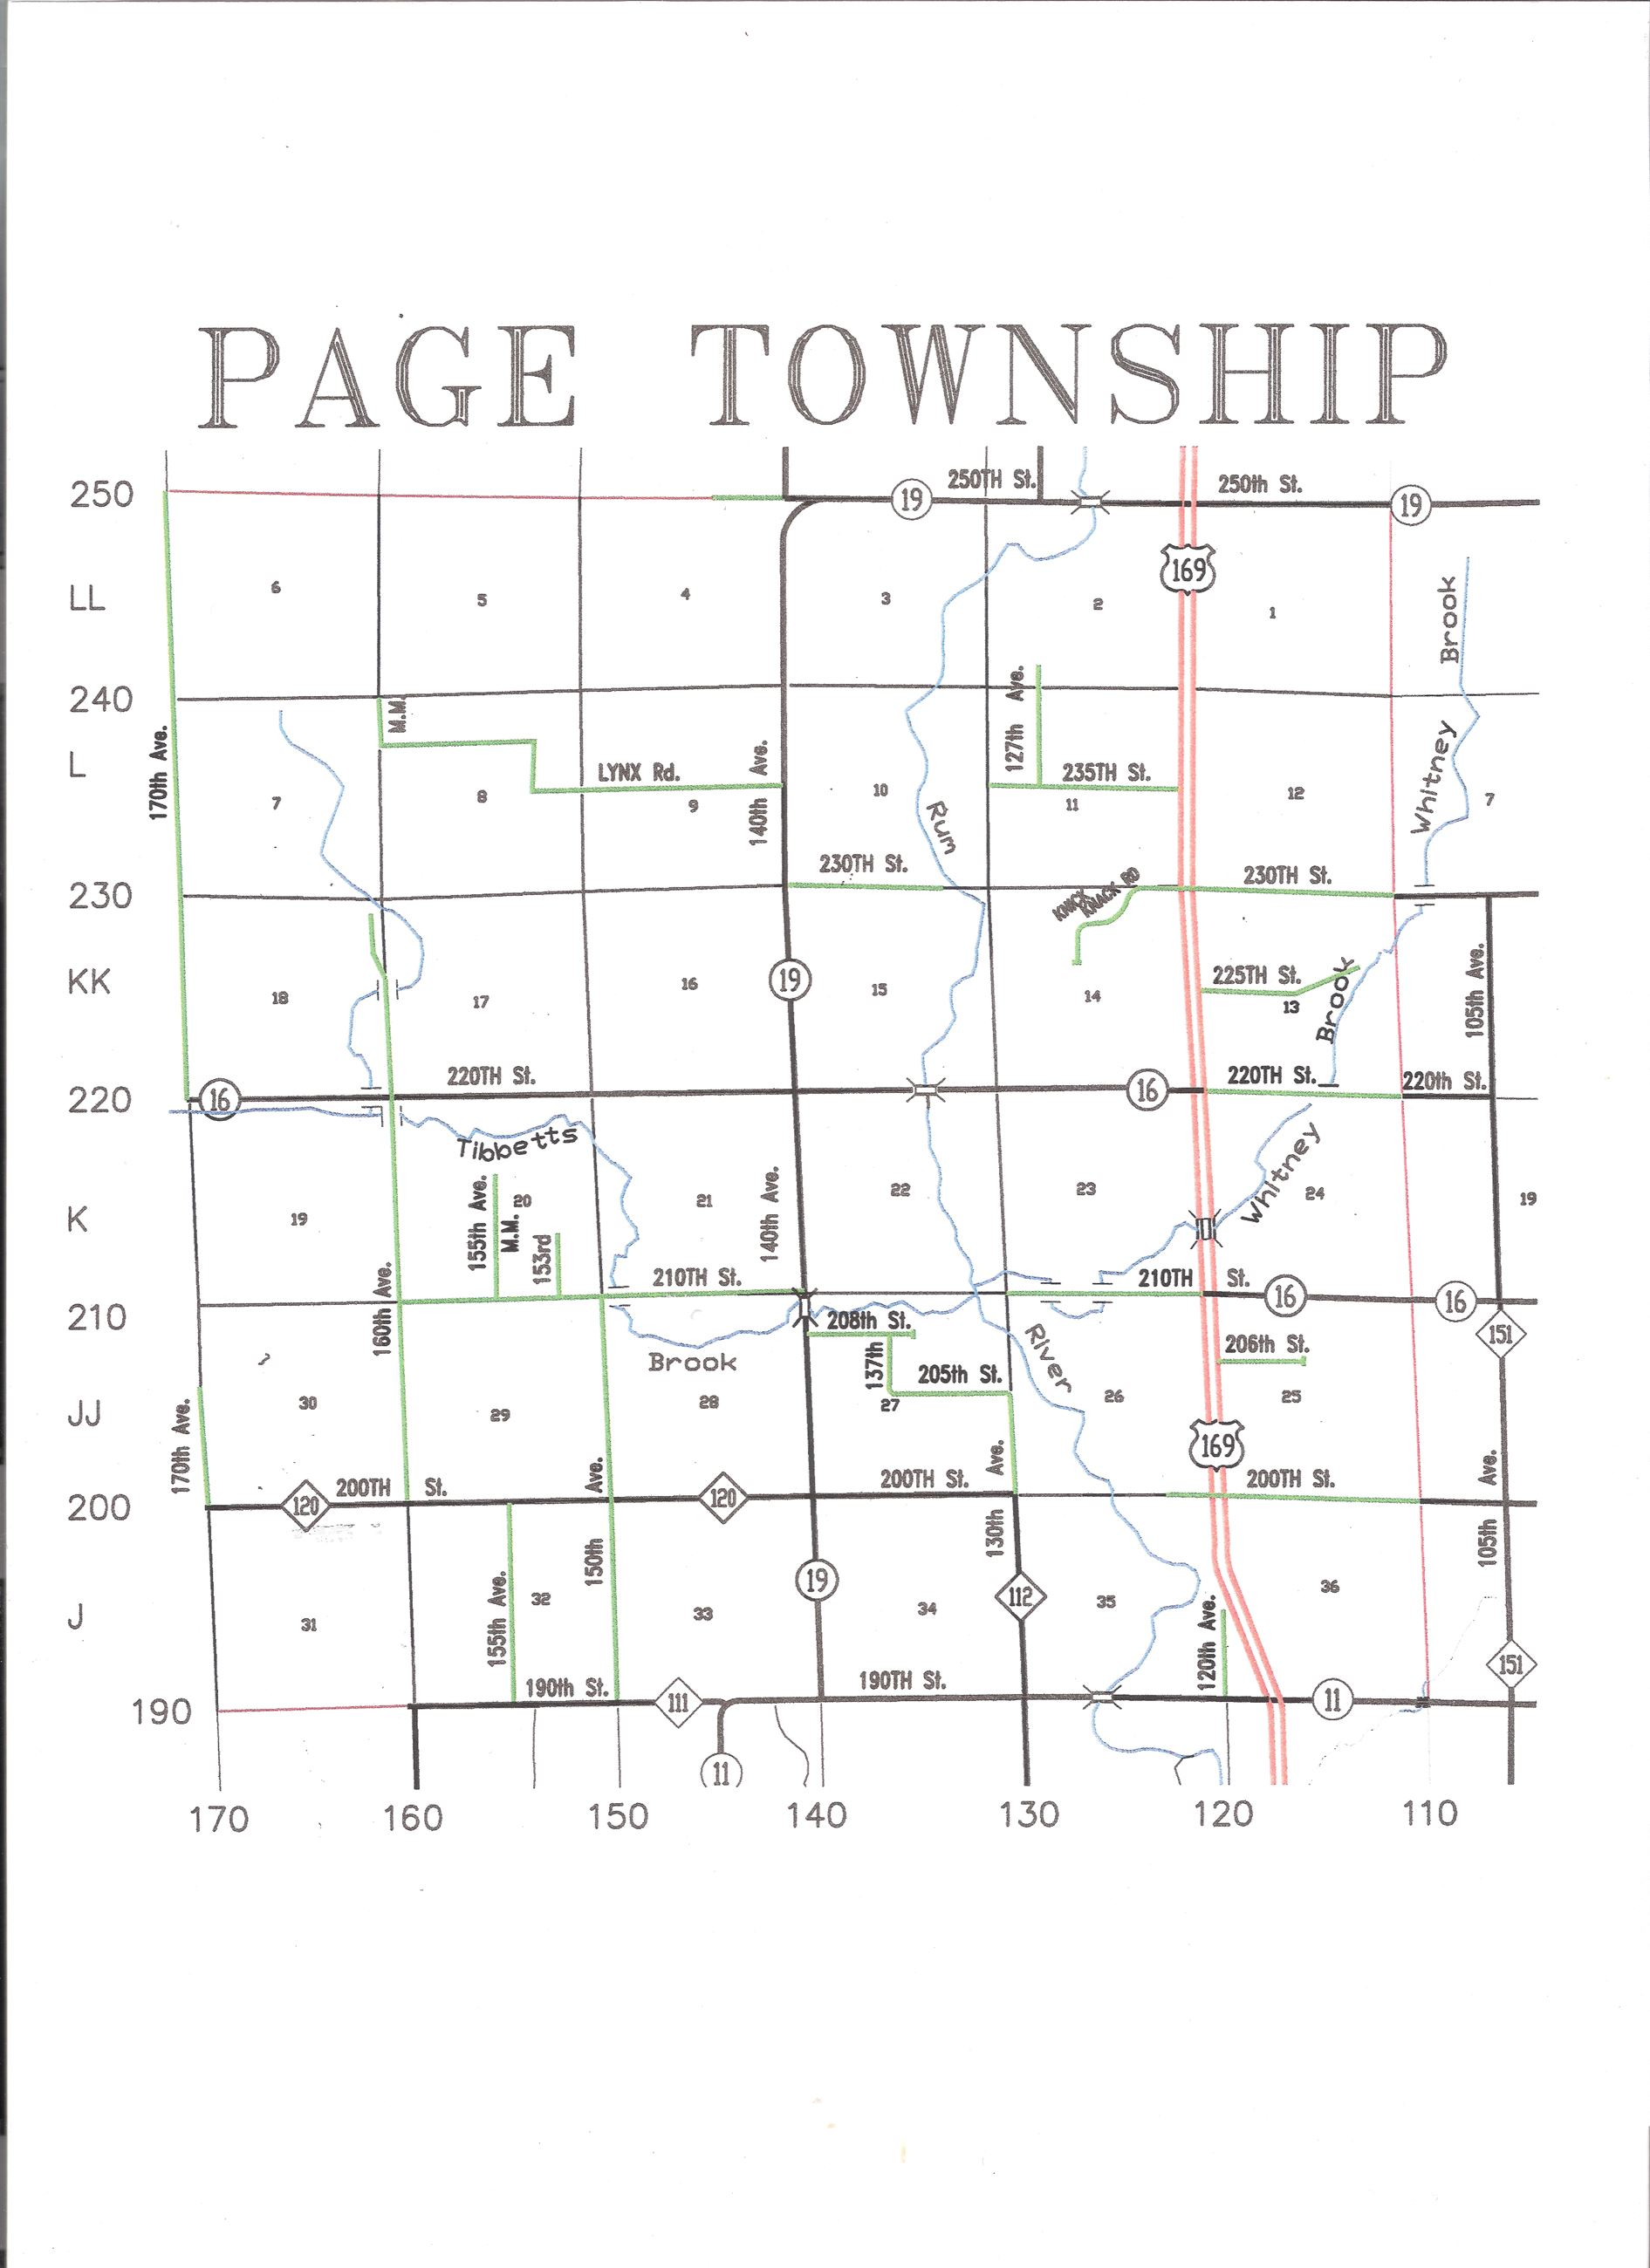 Page Township Road Map (JPG) Opens in new window